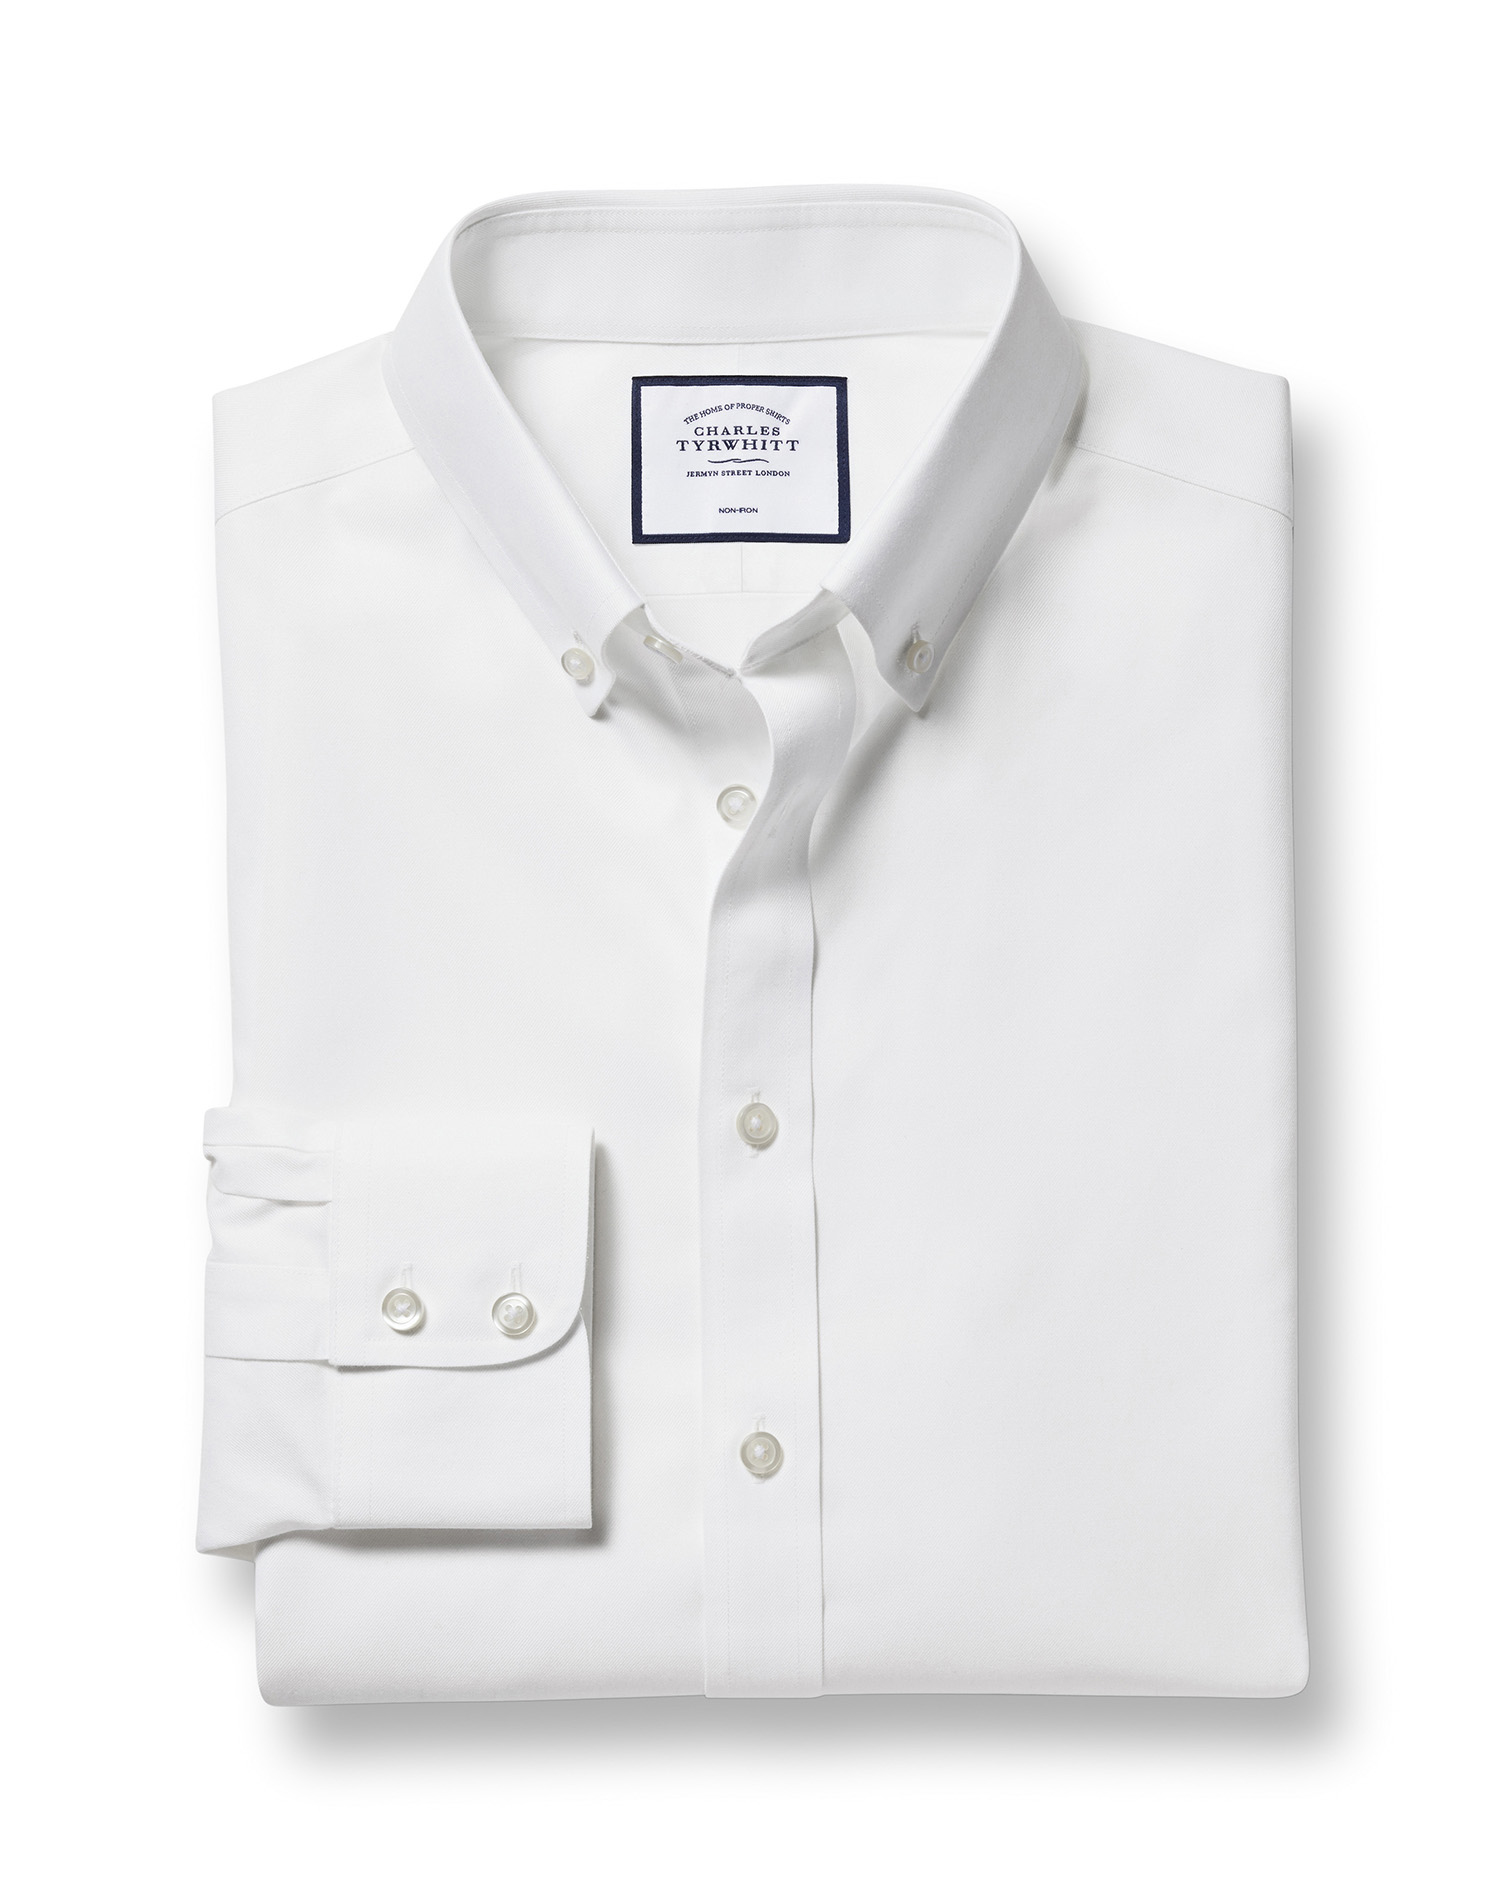 Classic Fit Button-Down Non-Iron Twill White Cotton Formal Shirt Single Cuff Size 16/38 by Charles T